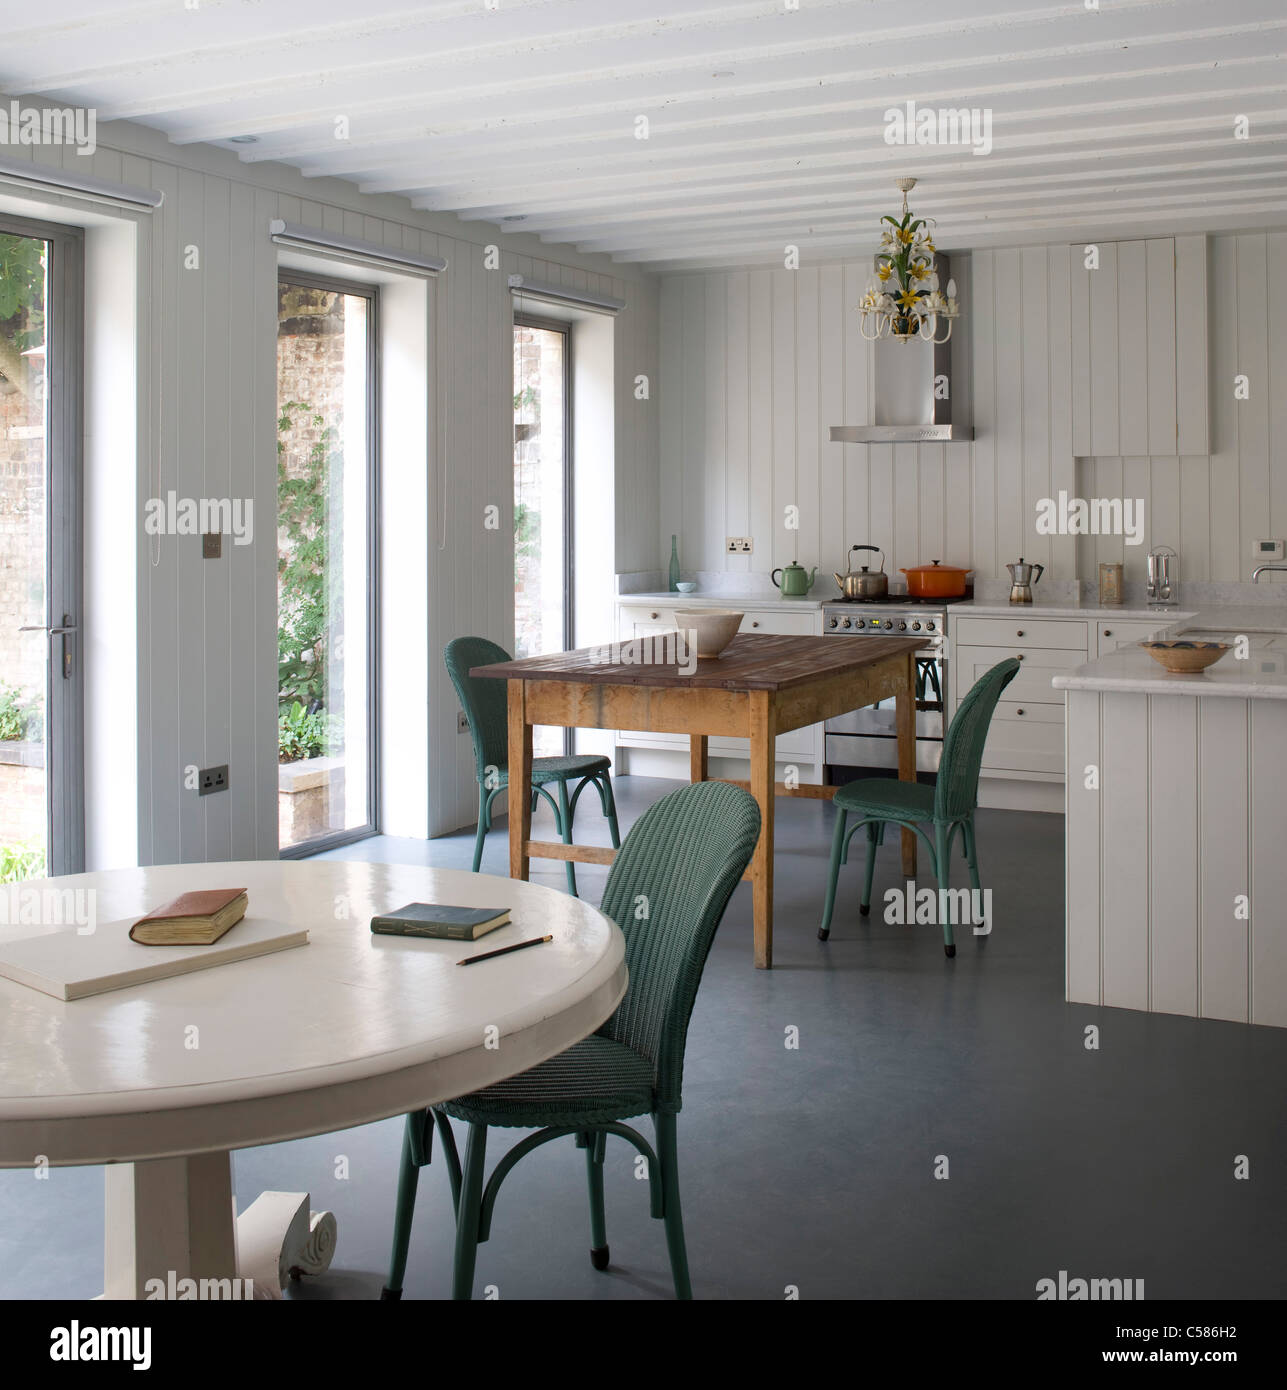 Kitchen Dining Room With White Painted Pedestal Table An Wood Panelled  Walls   Stock Photo